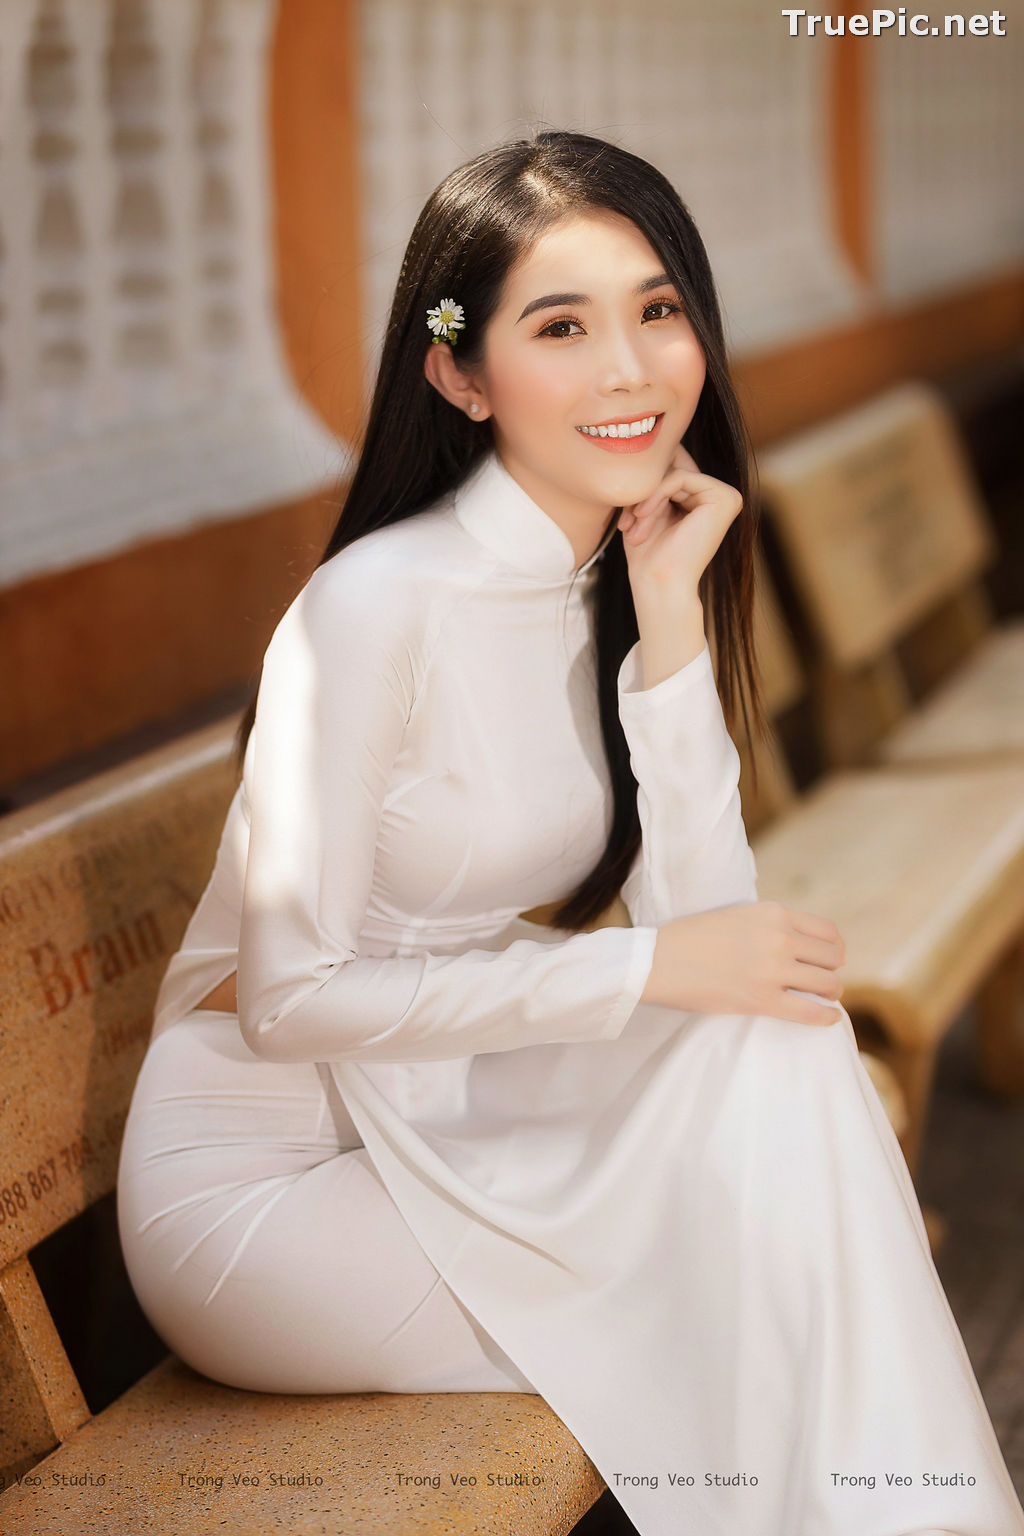 Image The Beauty of Vietnamese Girls with Traditional Dress (Ao Dai) #2 - TruePic.net - Picture-4